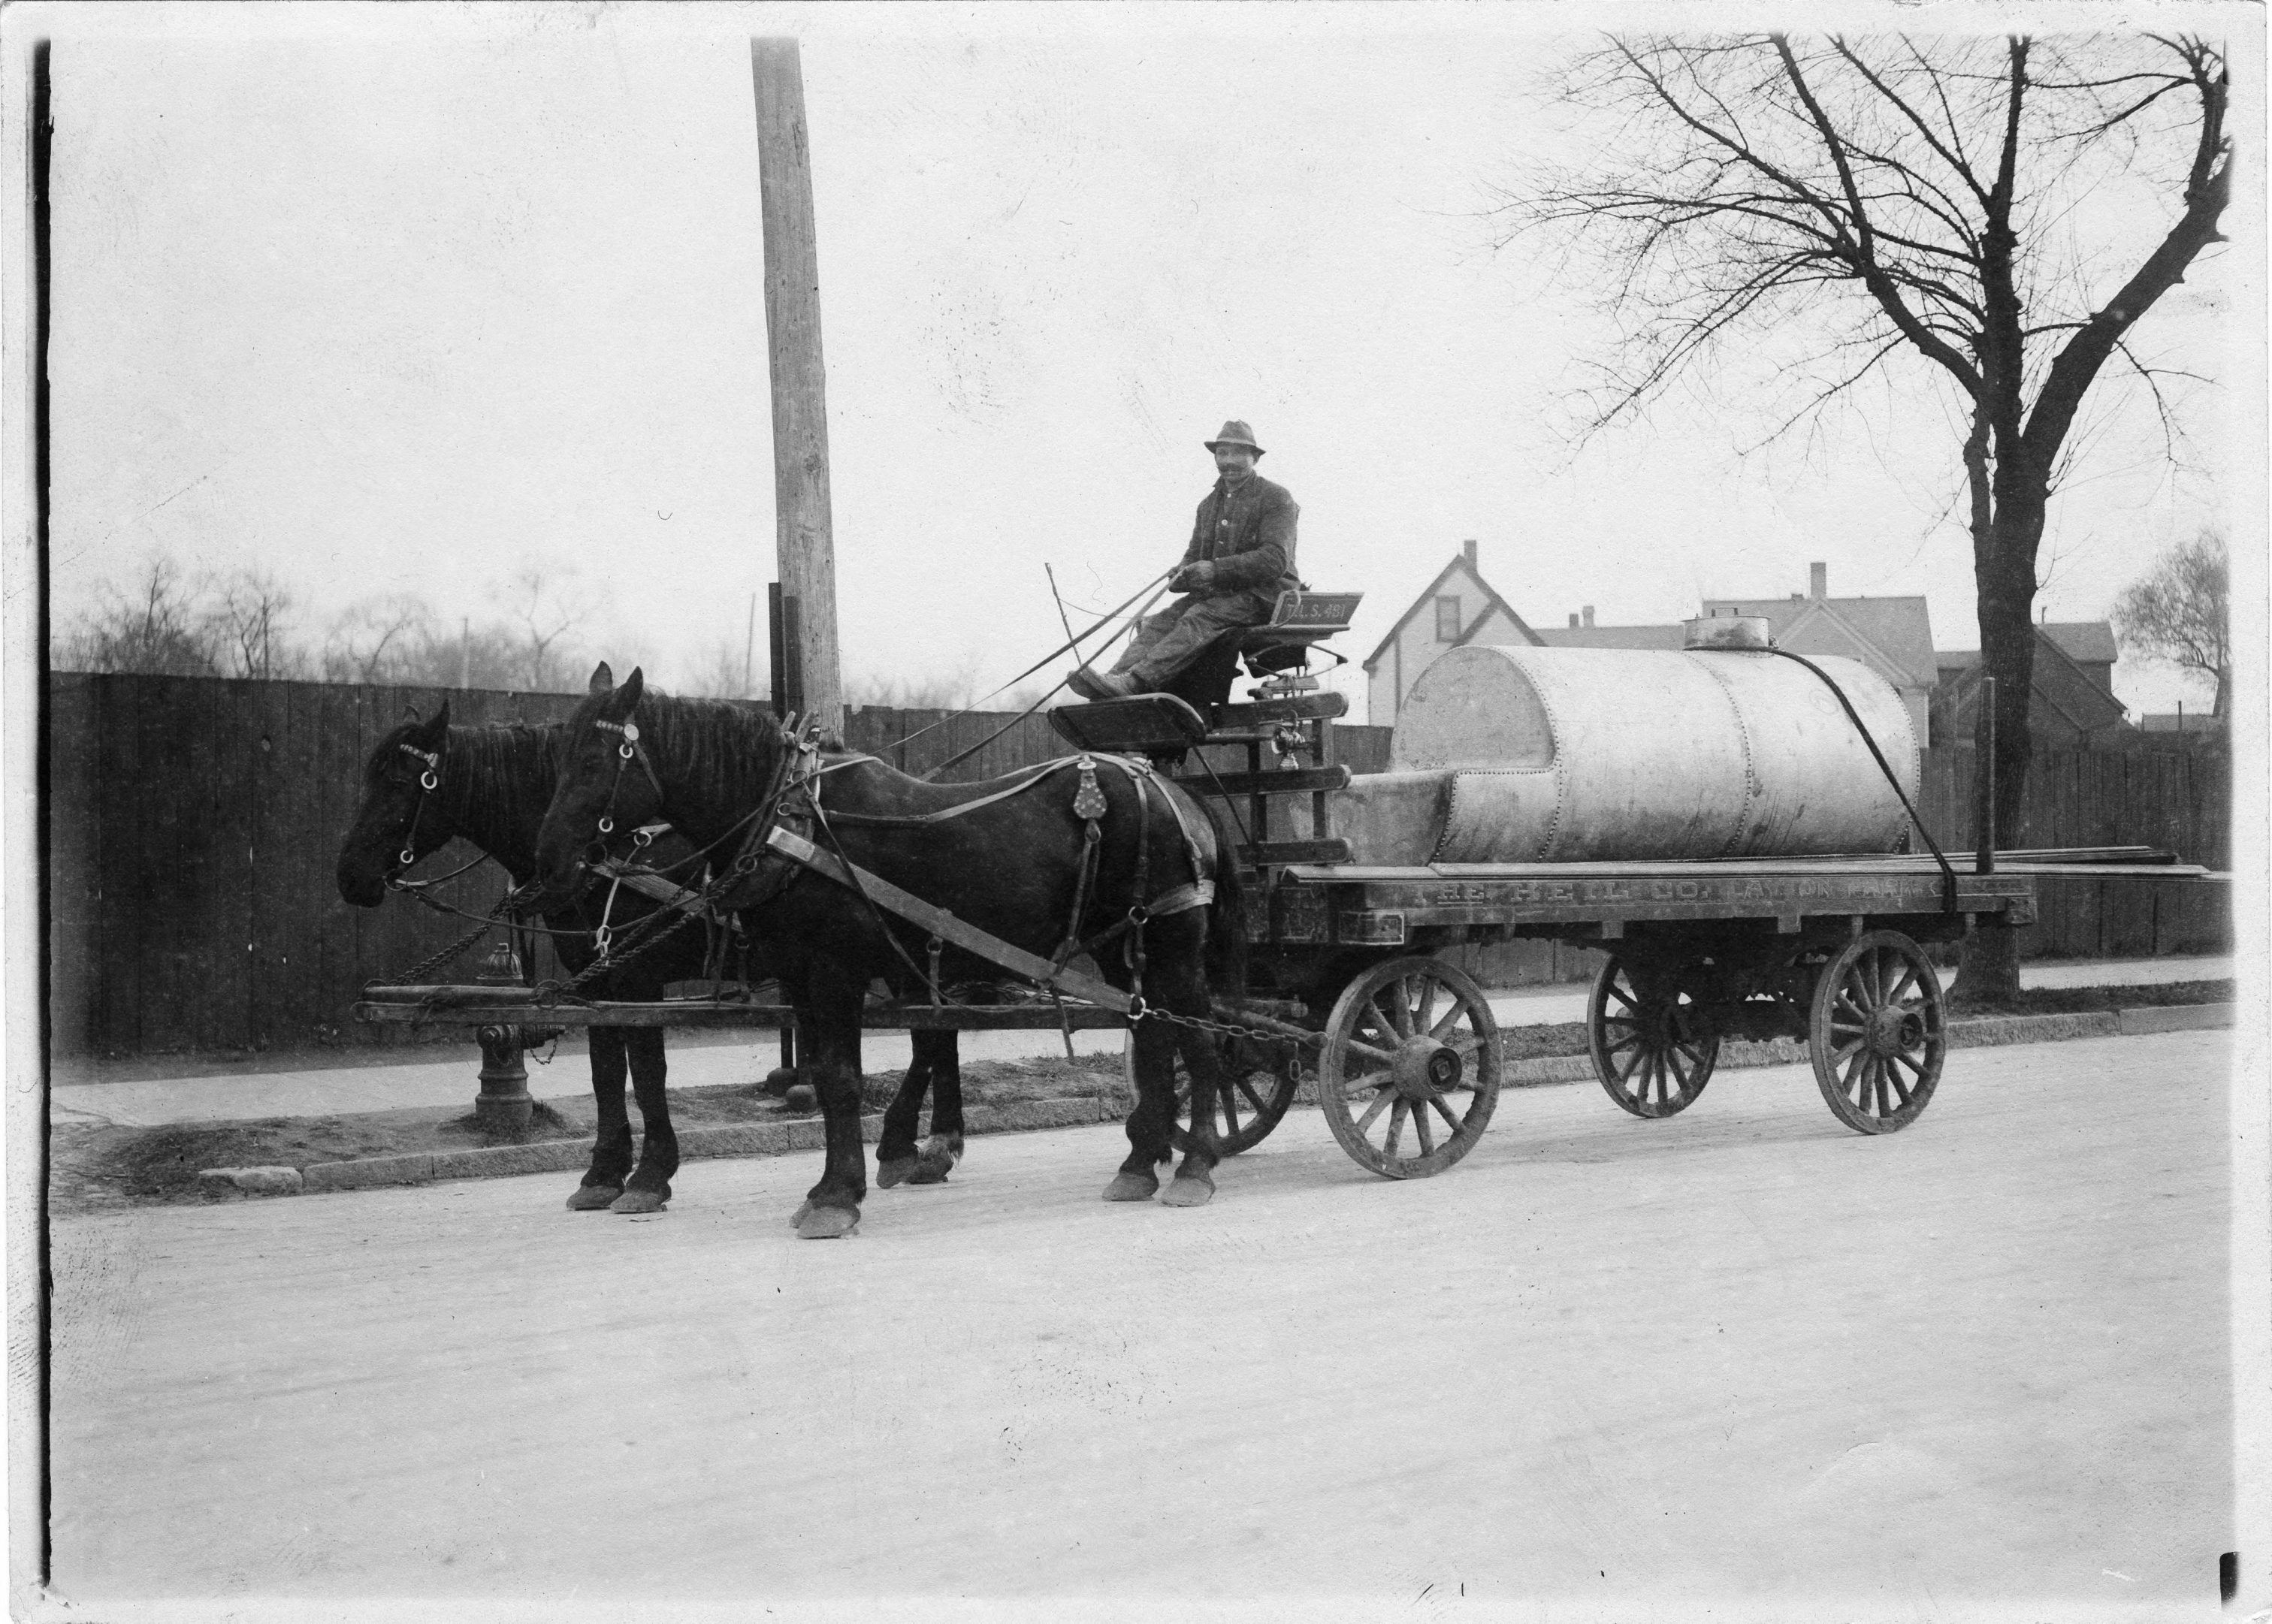 A man sits atop a horse-drawn wagon carrying a metal tank. The wagon is labelled as belonging to the Heil Company, located in the Layton Park neighborhood.